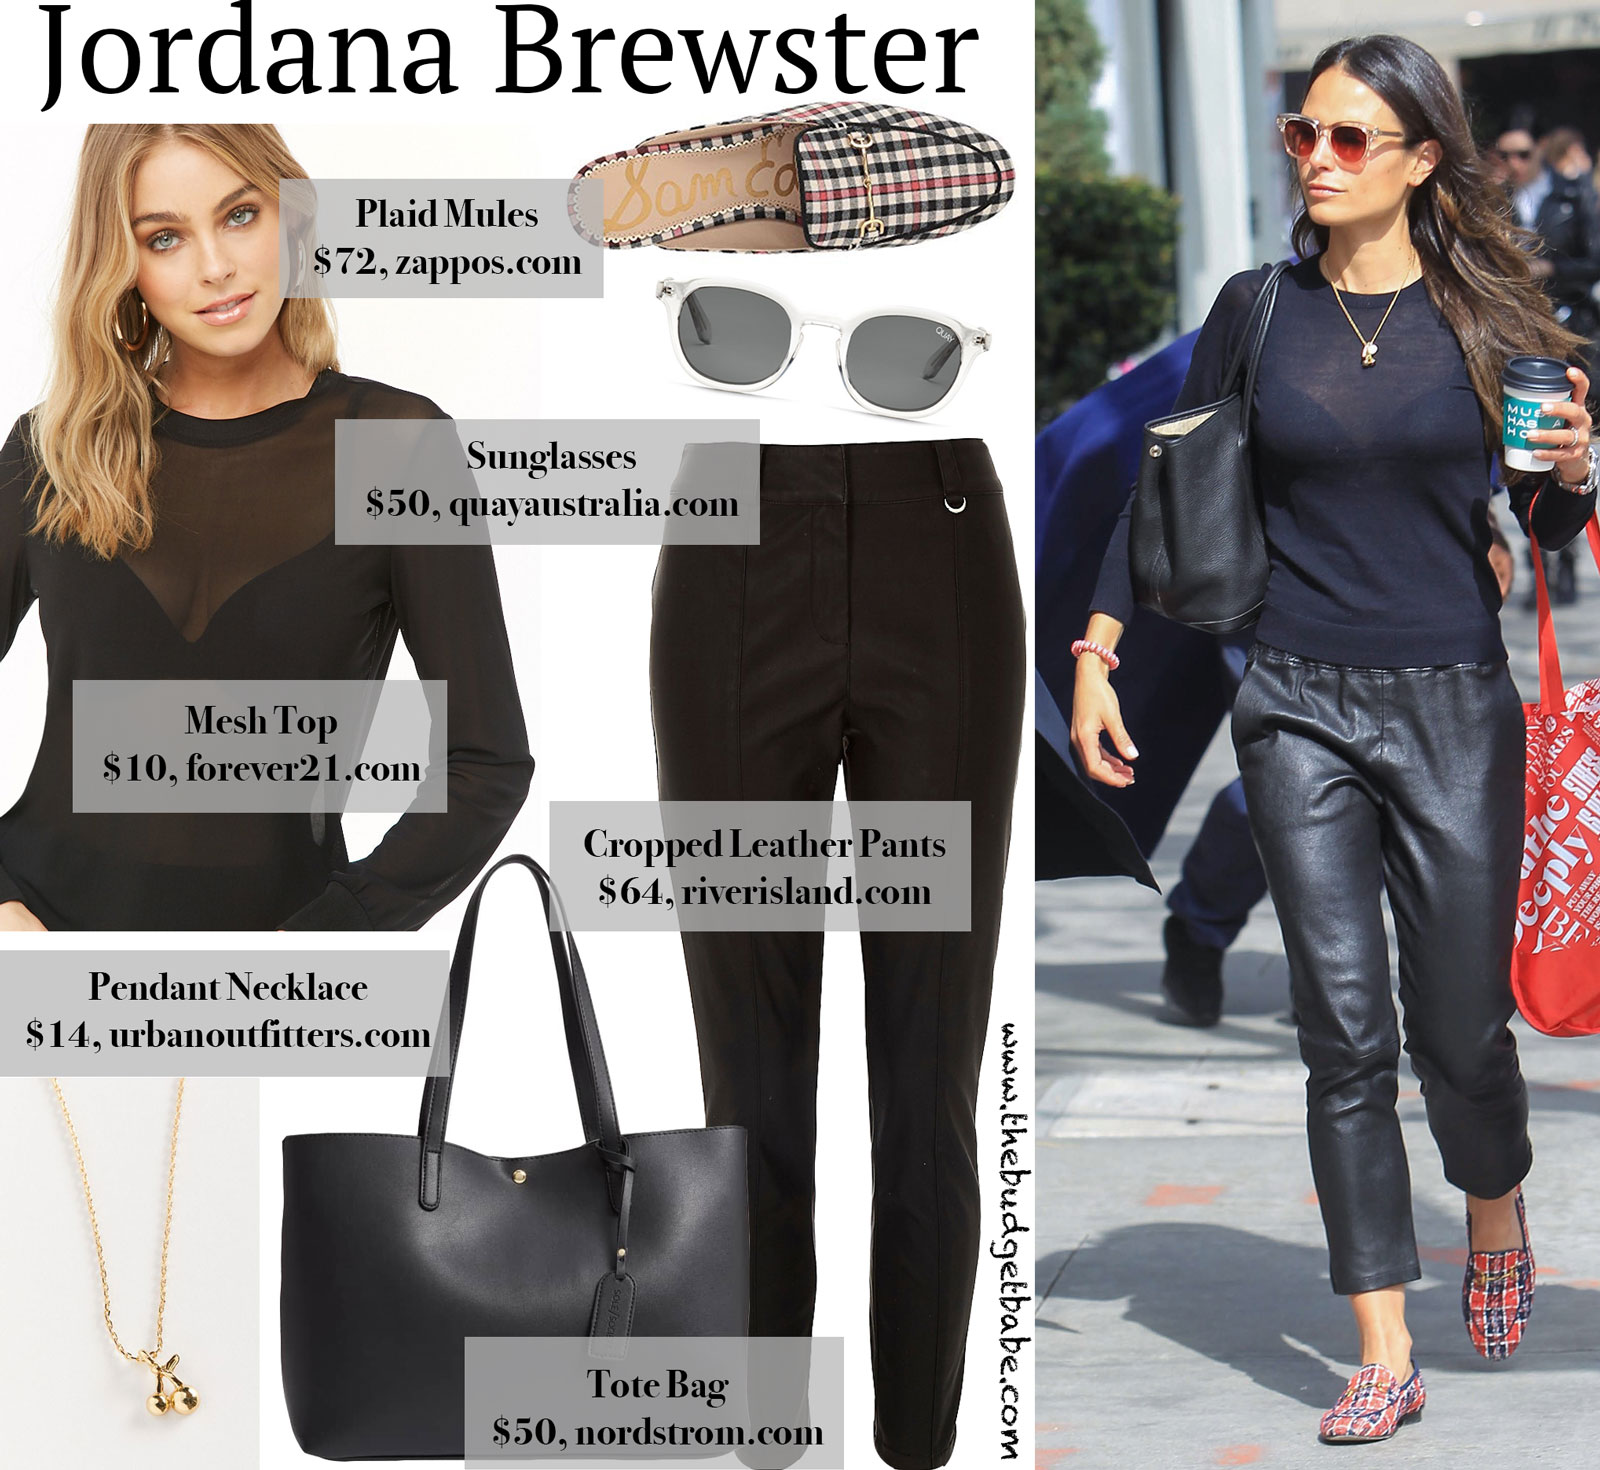 Jordana Brewster Mesh Top and Leather Cropped Pants Look for Less